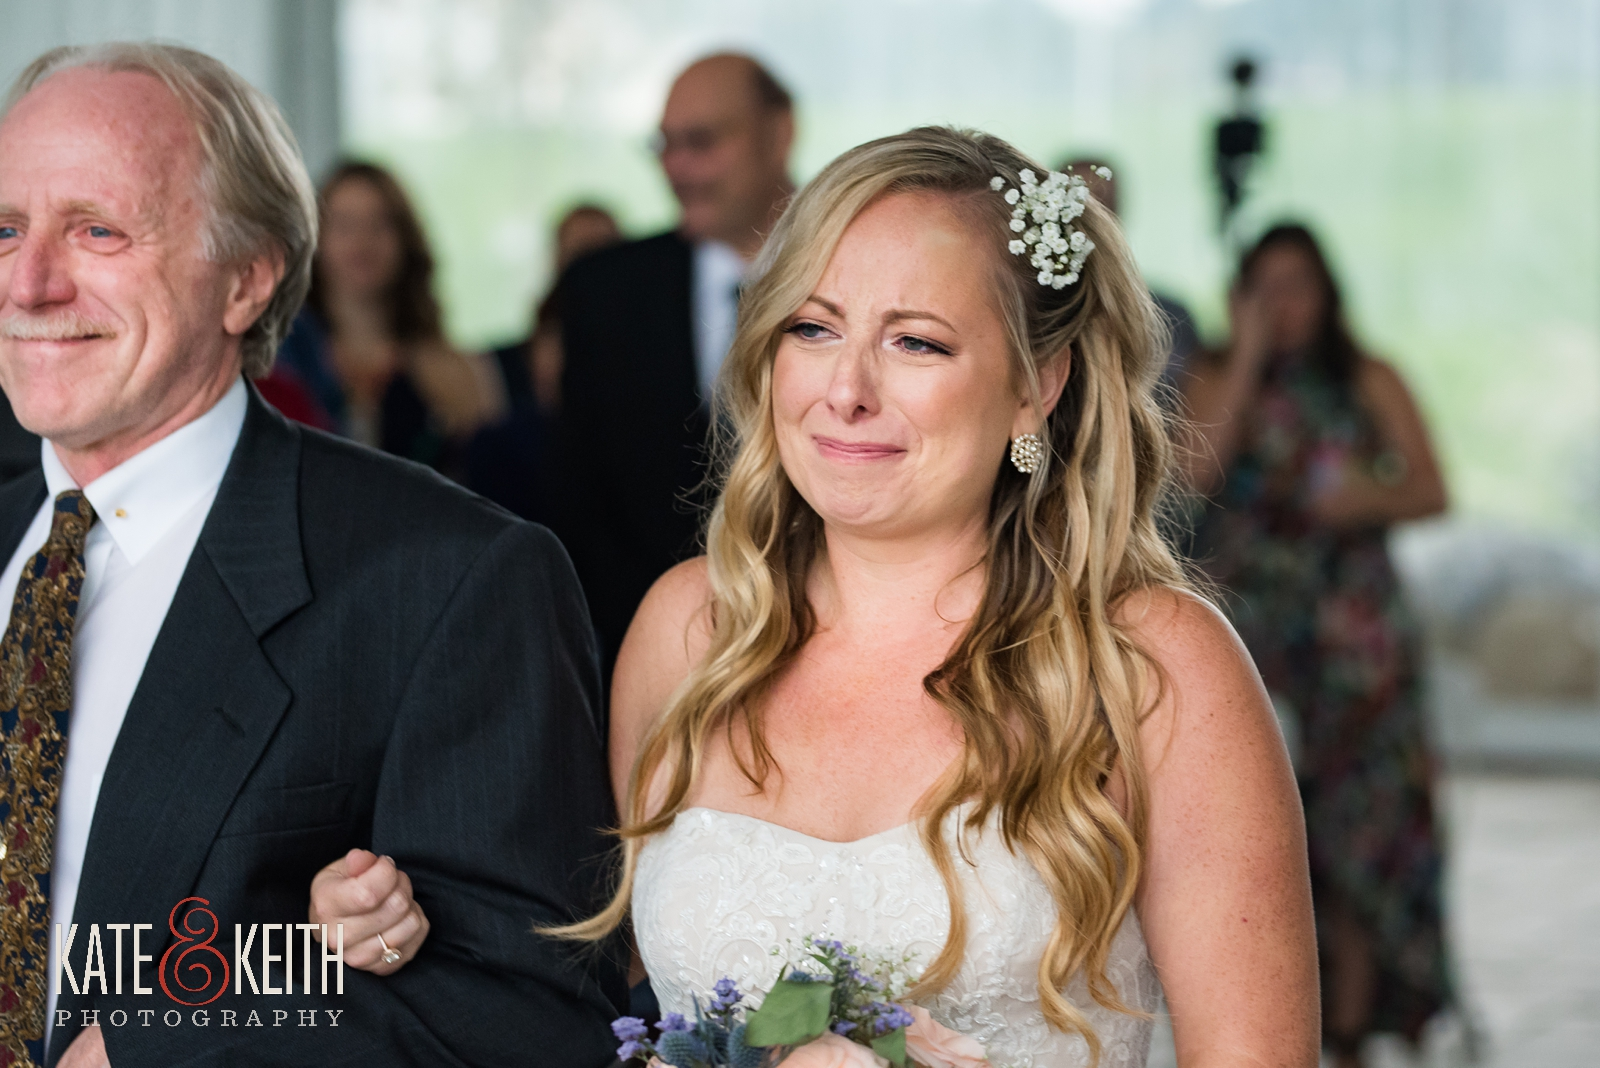 New Hampshire, Lakes Region, Lake Winnipesaukee, The Margate Resort, wedding, outdoor wedding, lakeside wedding, wedding processional, sweet moment, bride with her father, walking down the aisle, bride crying, tears of joy, emotional wedding moment, father of the bride